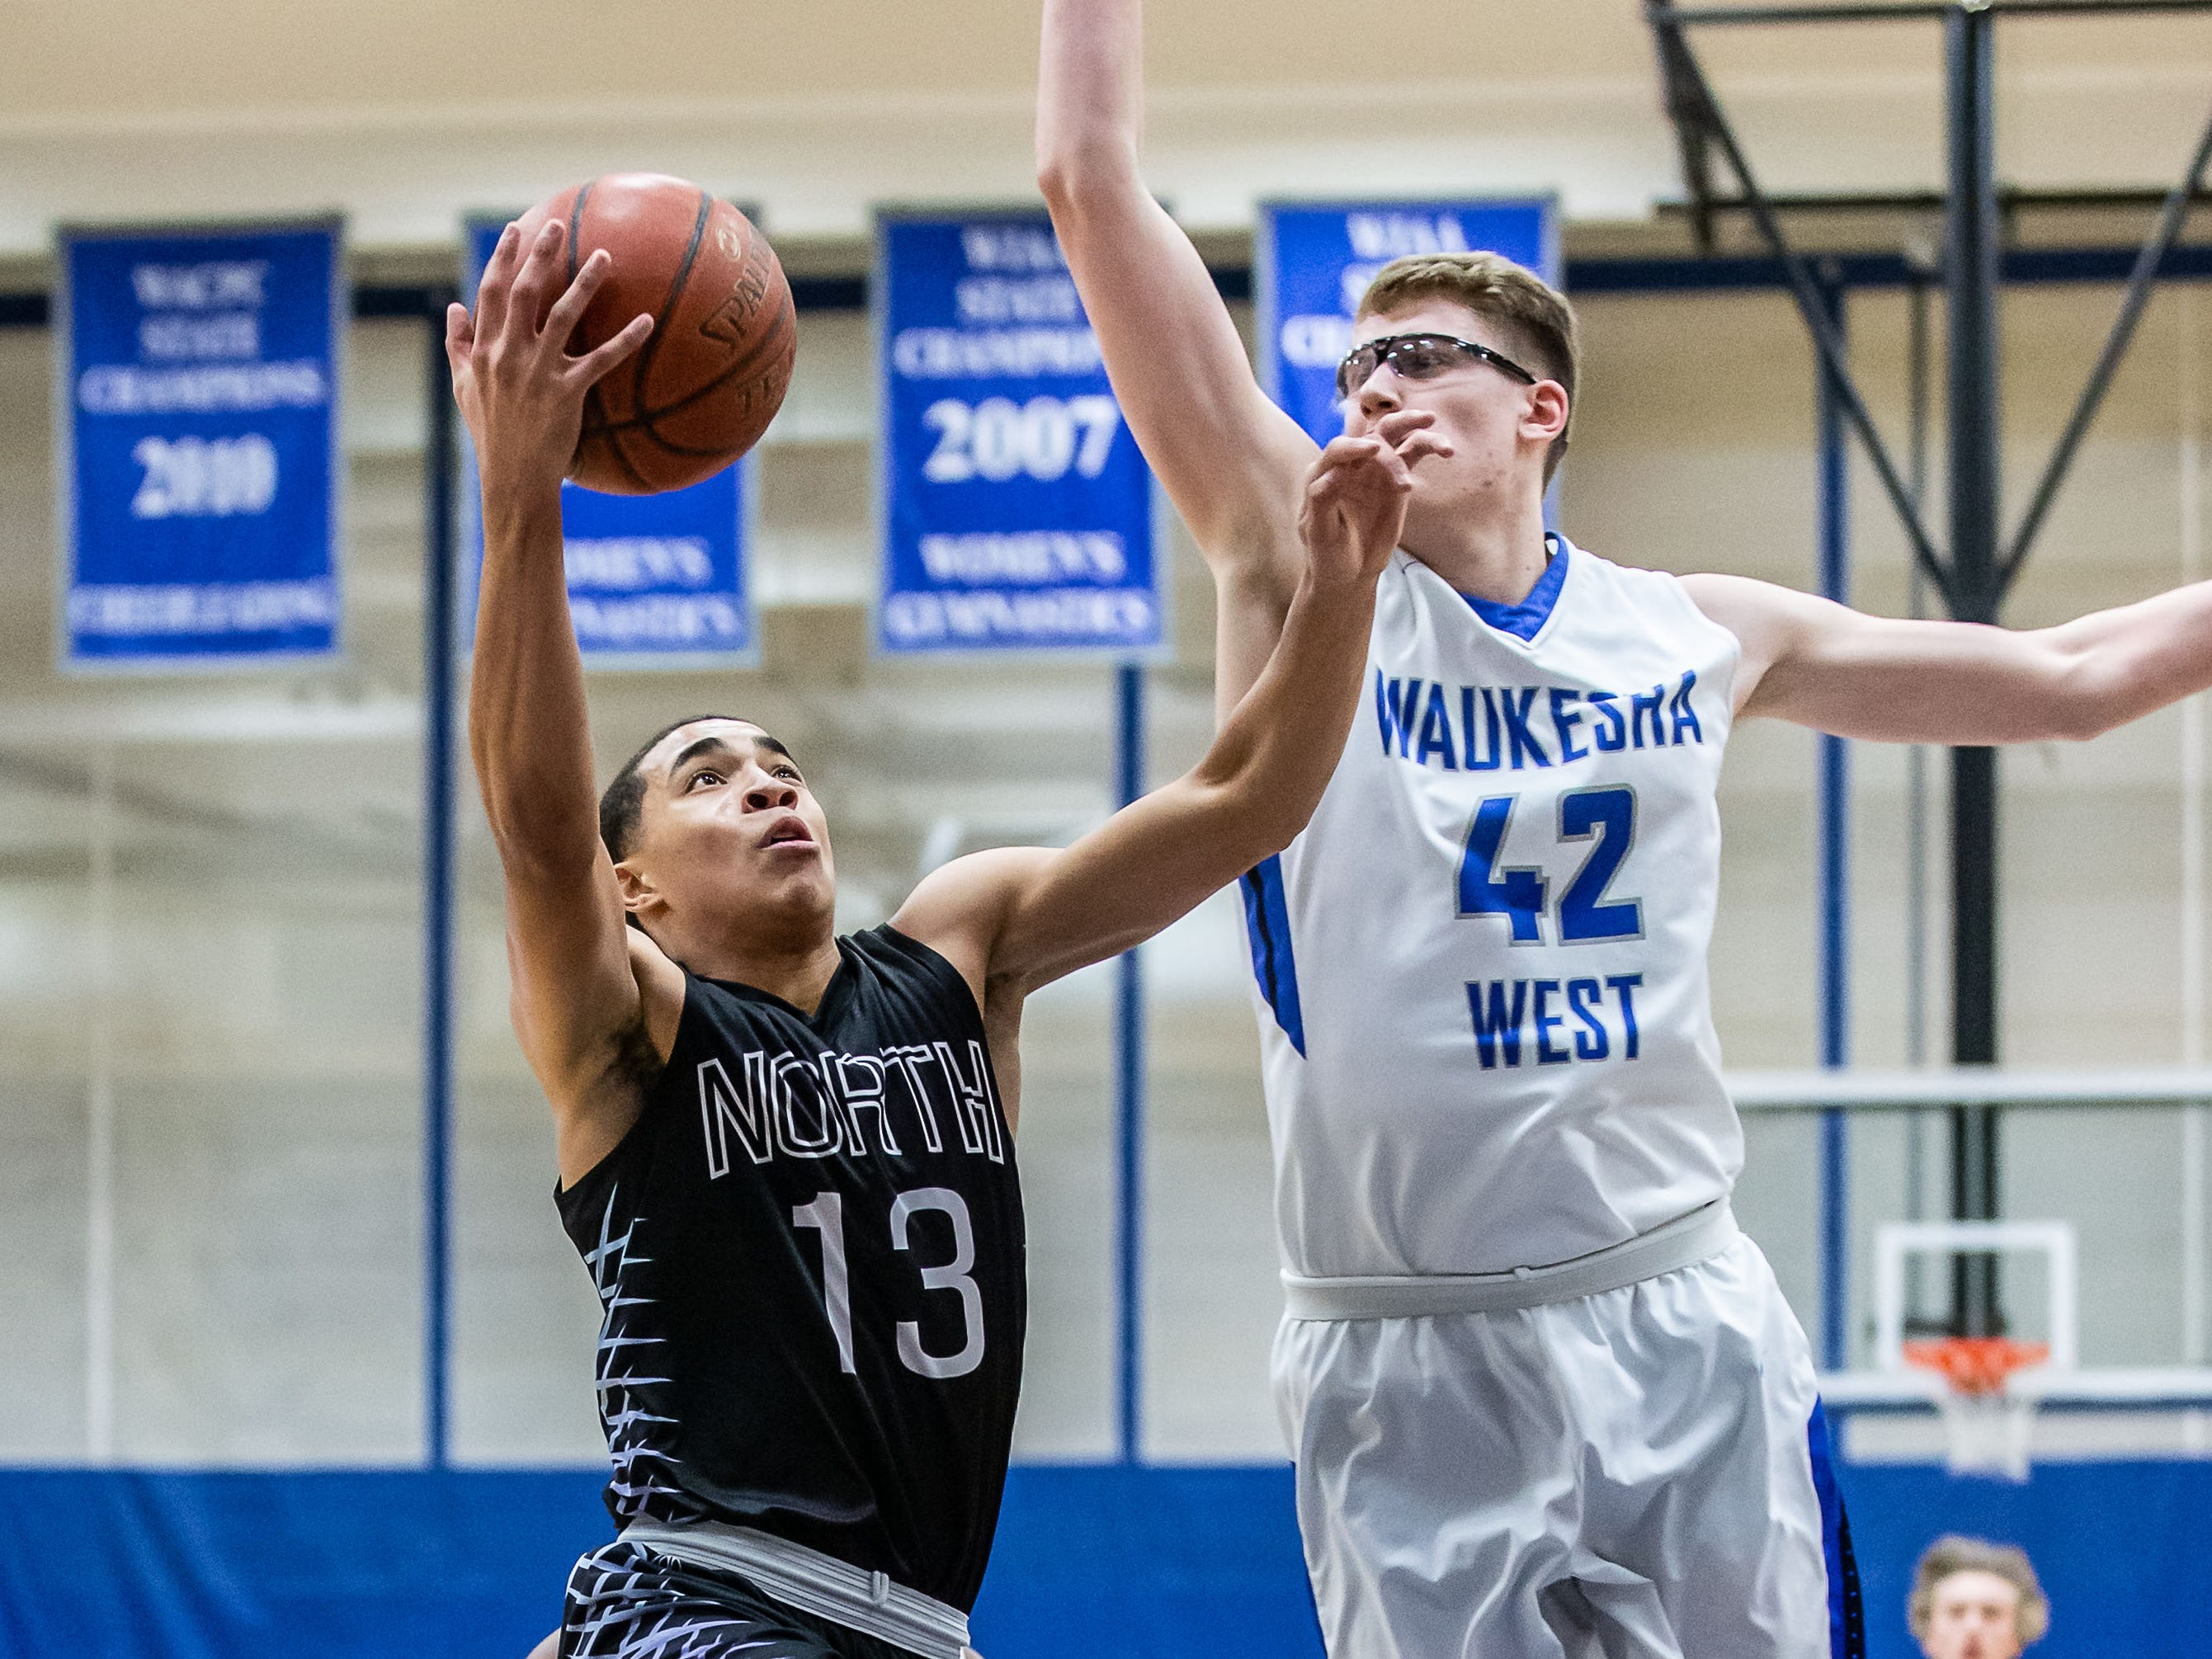 Waukesha West's David Skogman (42) prepares to swat away a shot by Waukesha North's Chimere Dike (13) during the game at West on Friday, Jan. 18, 2019.